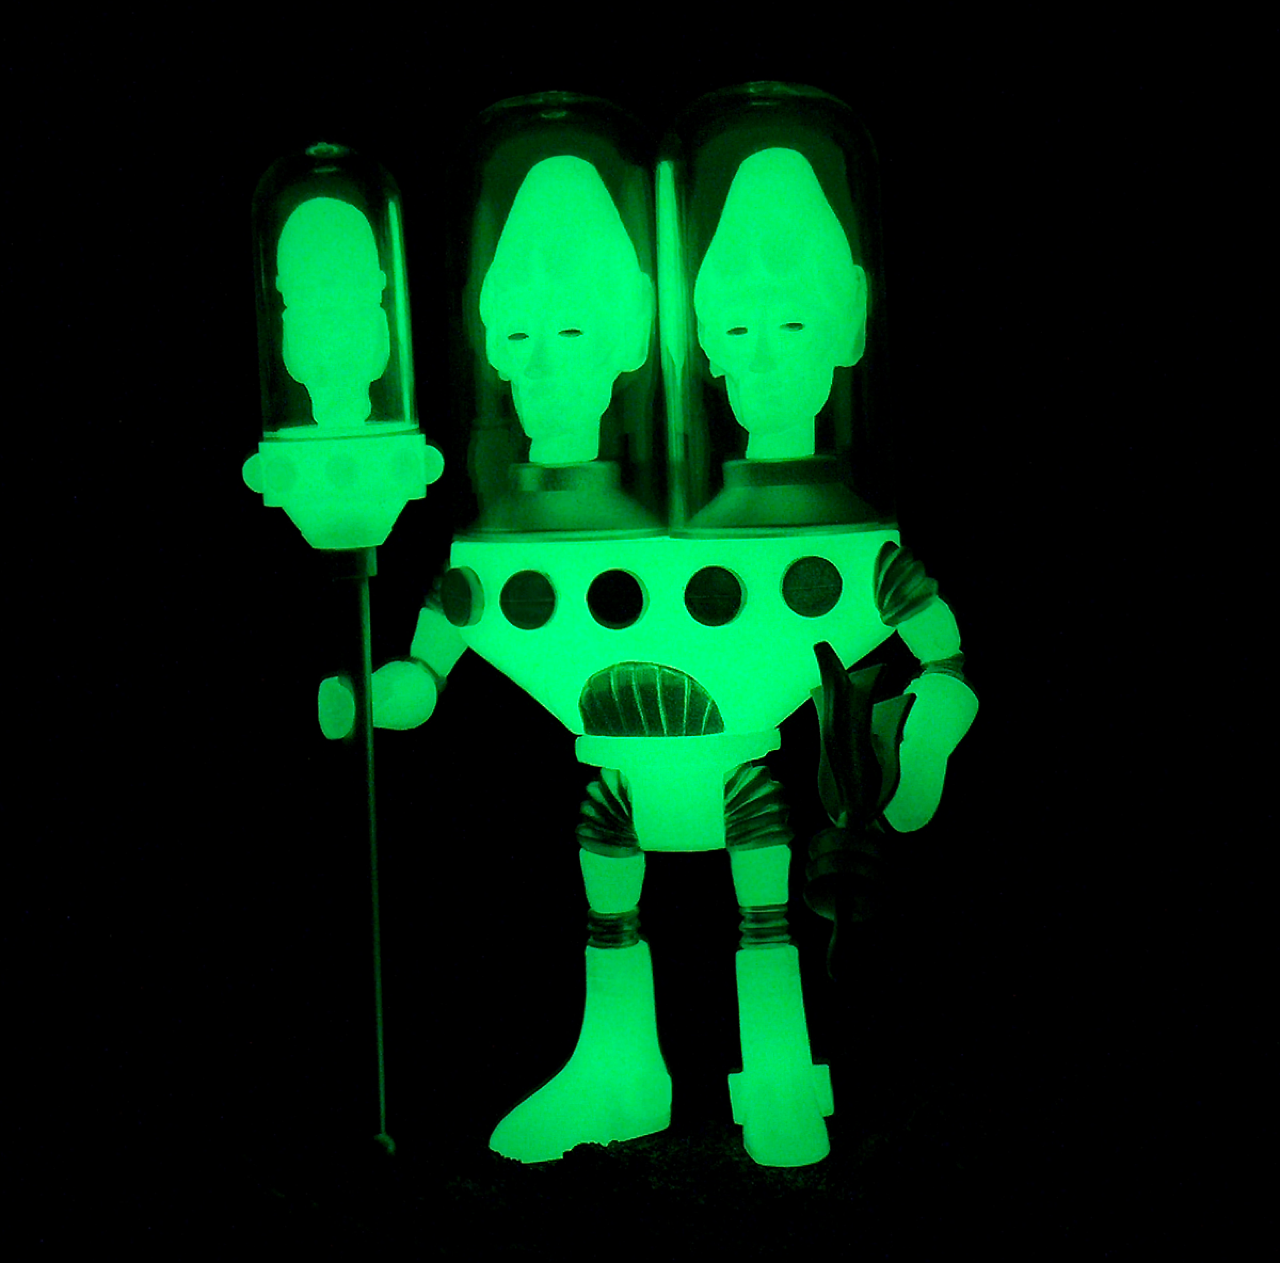 COLORFORMS OUTER SPACE MEN NEW 2018 JACK ASTEROID COSMIC RADIATION GLOW IN DARK